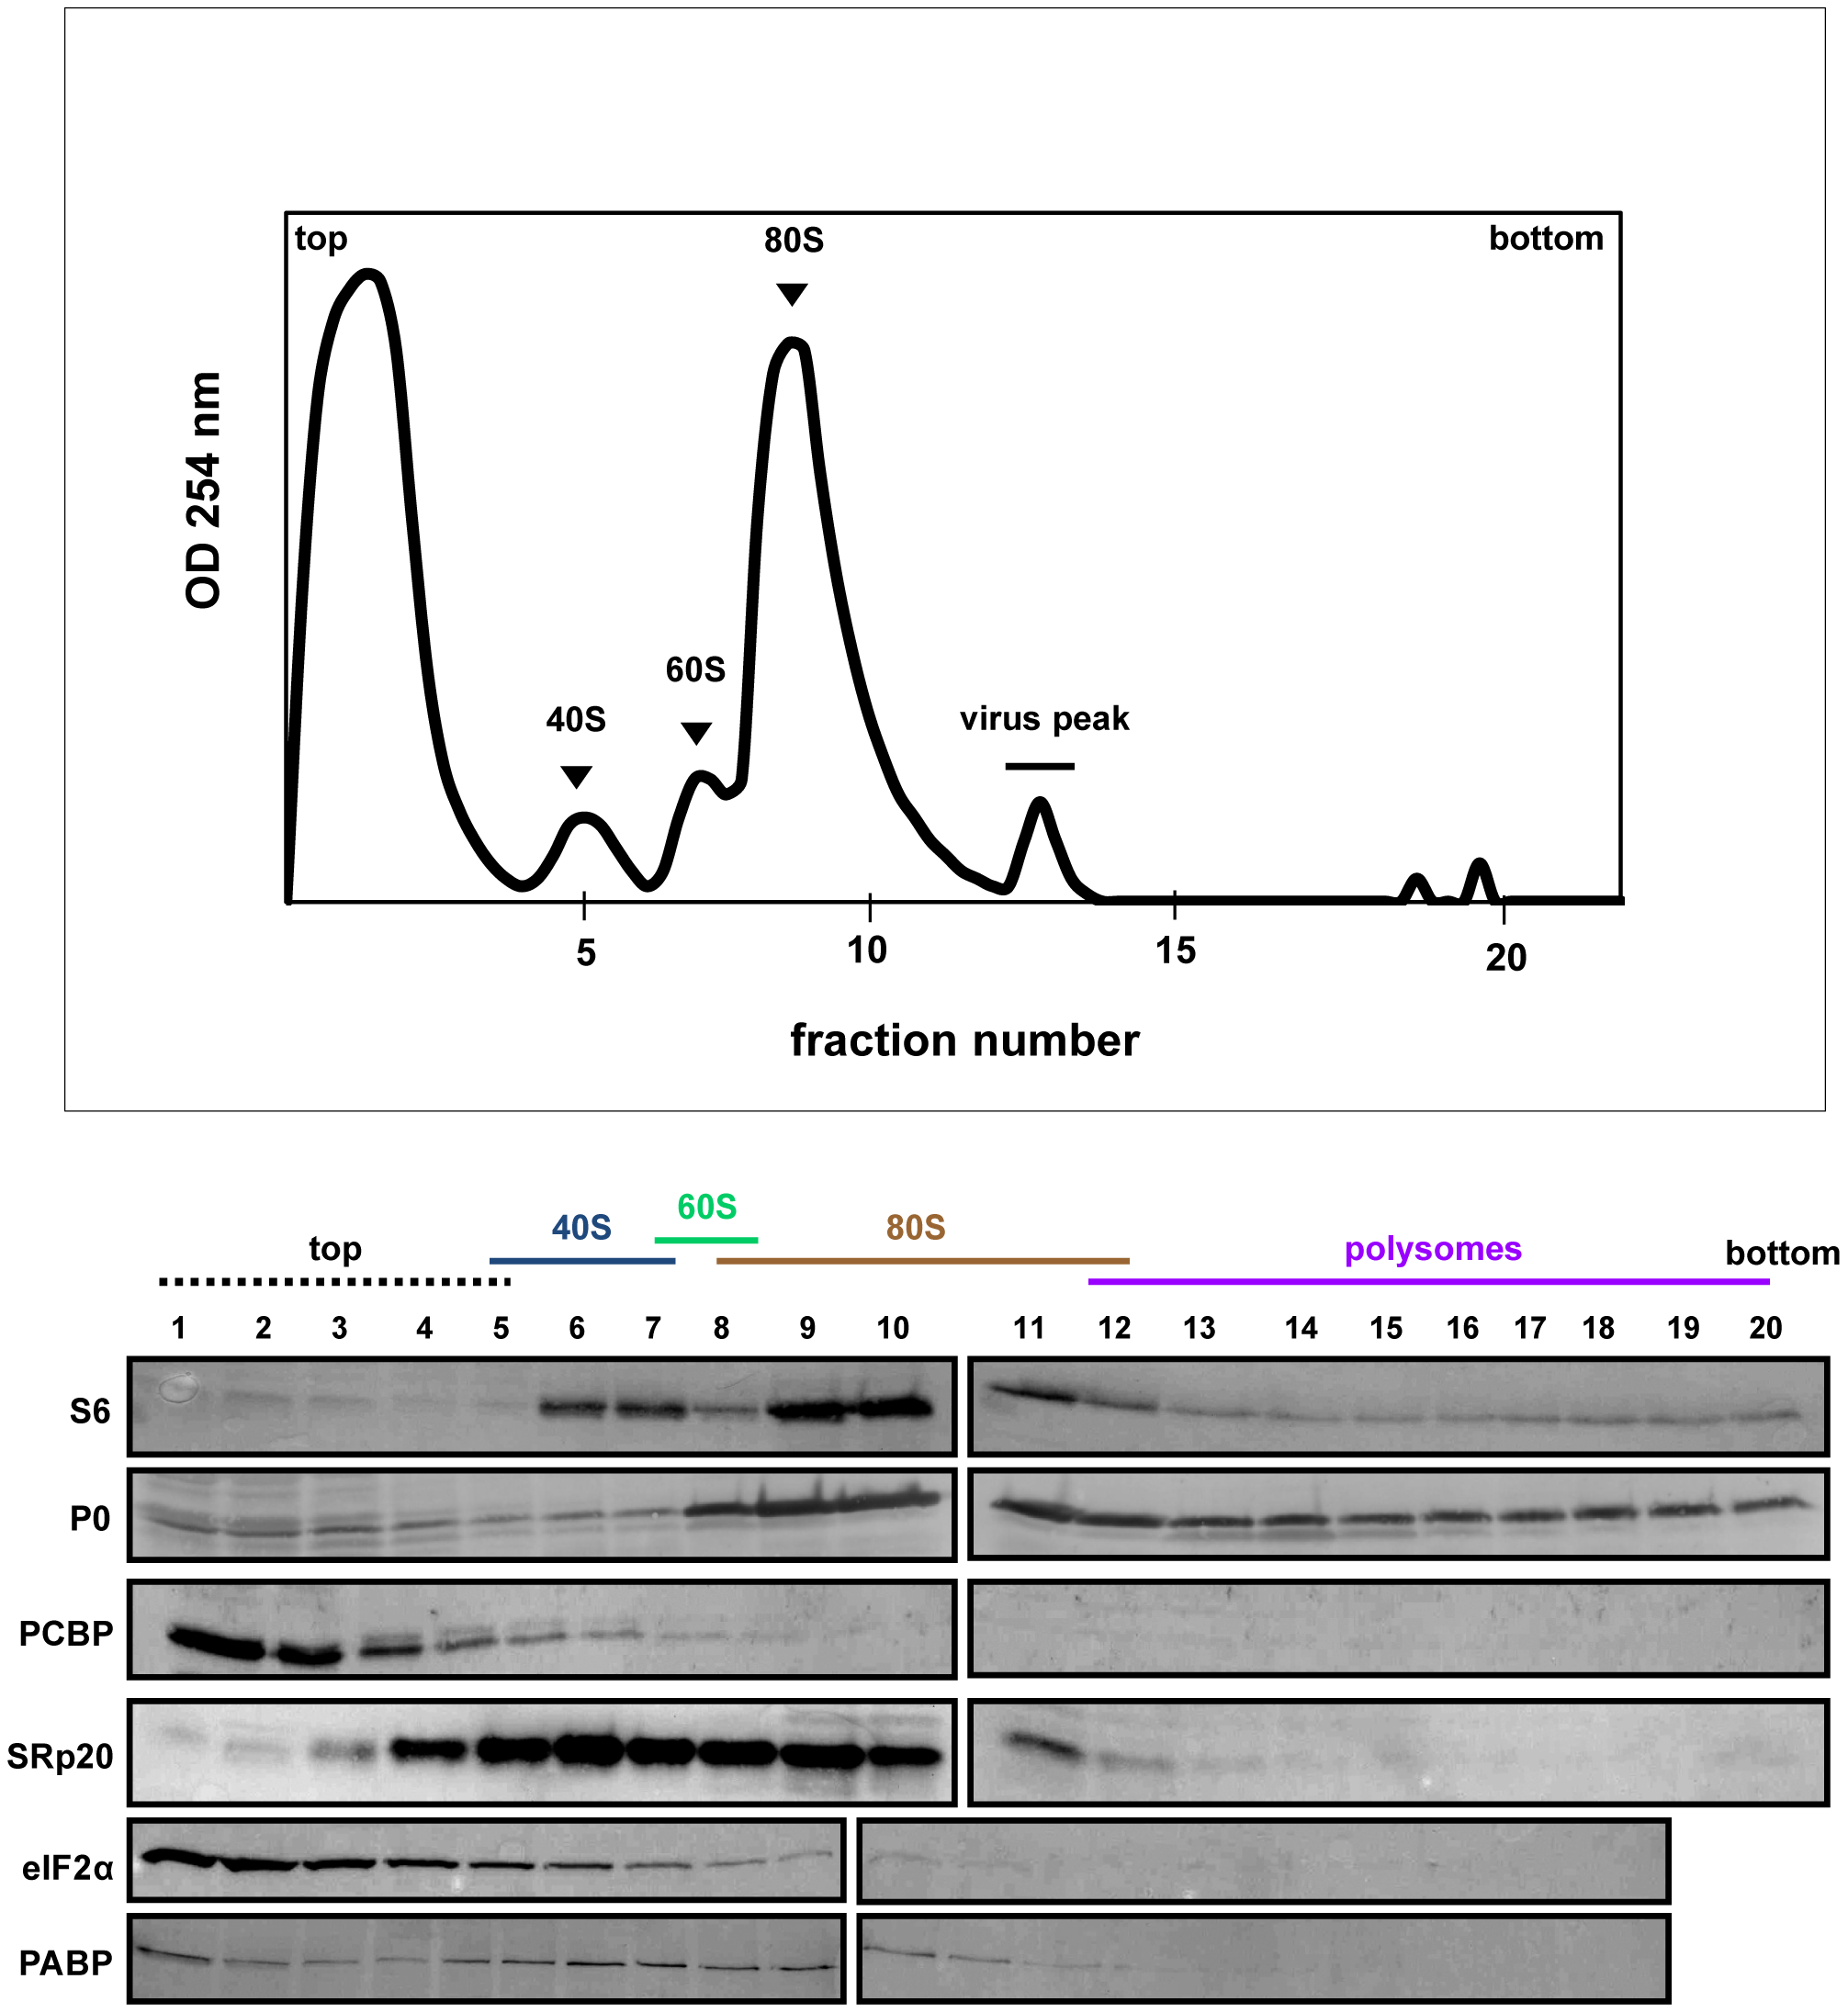 SRp20 and PCBP2 co-sedimentation with 40S ribosomal subunits in poliovirus-infected cells (5 hr post-infection).